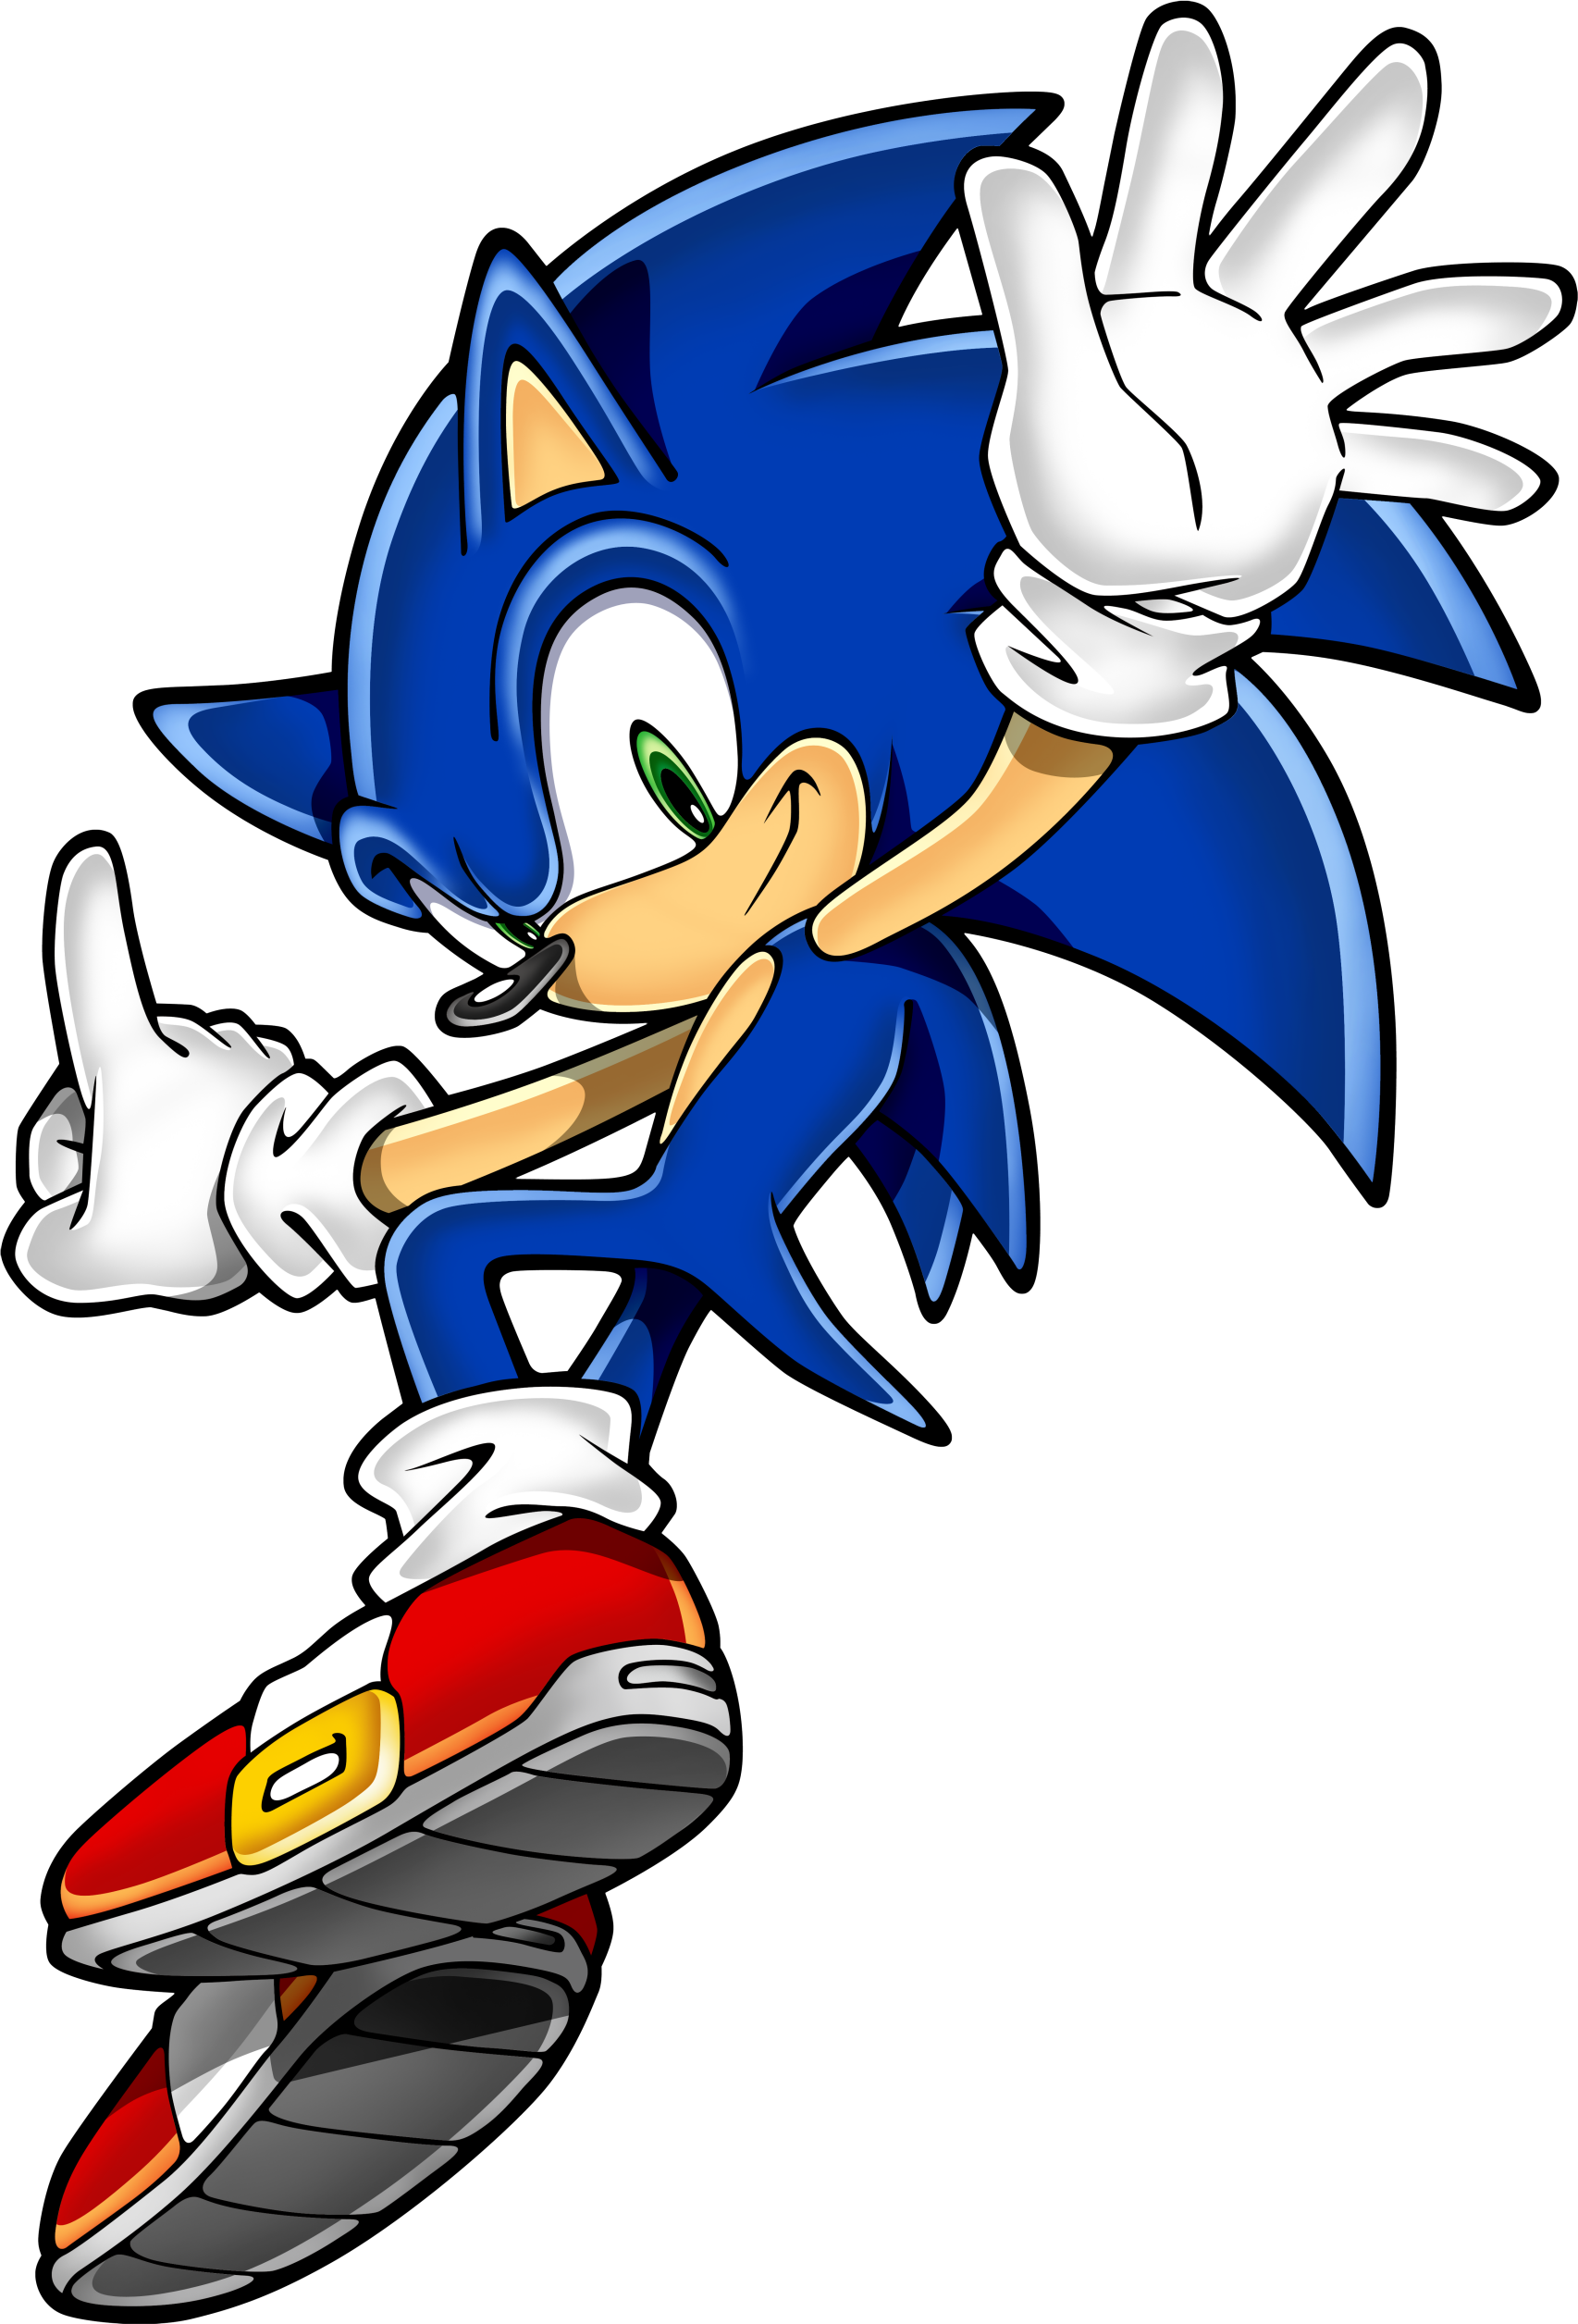 Drawing alphabet sonic the hedgehog. Png transparent images all